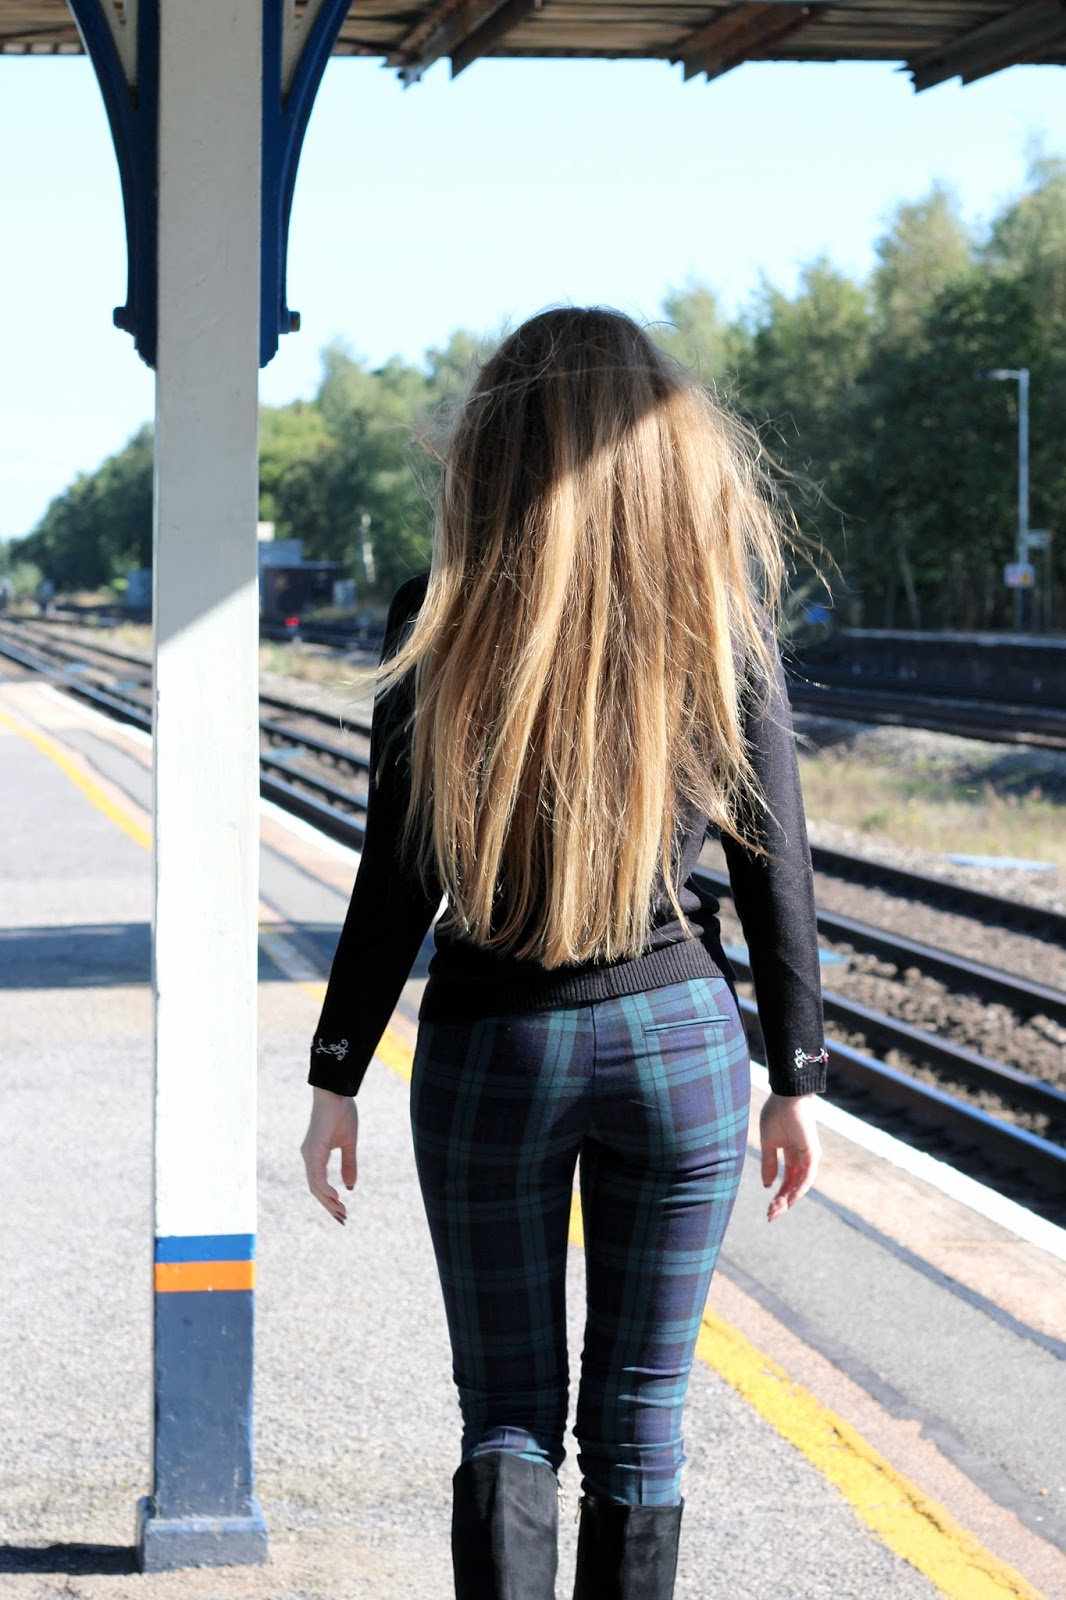 Train station railway fashion blogger photoshoot